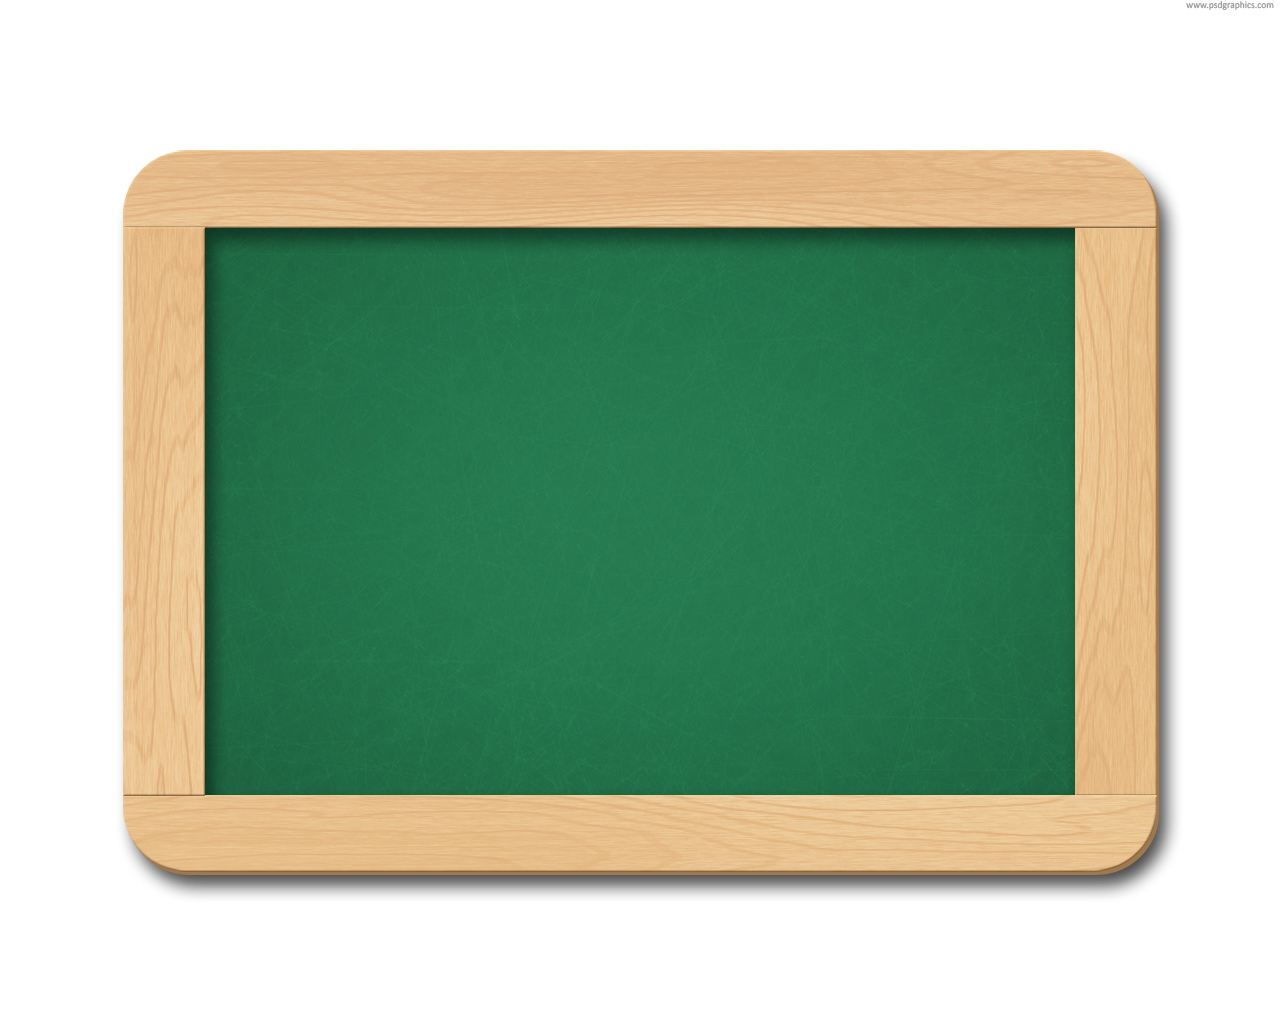 Full Size Jpg Preview  Chalkboard With Chalk Brush